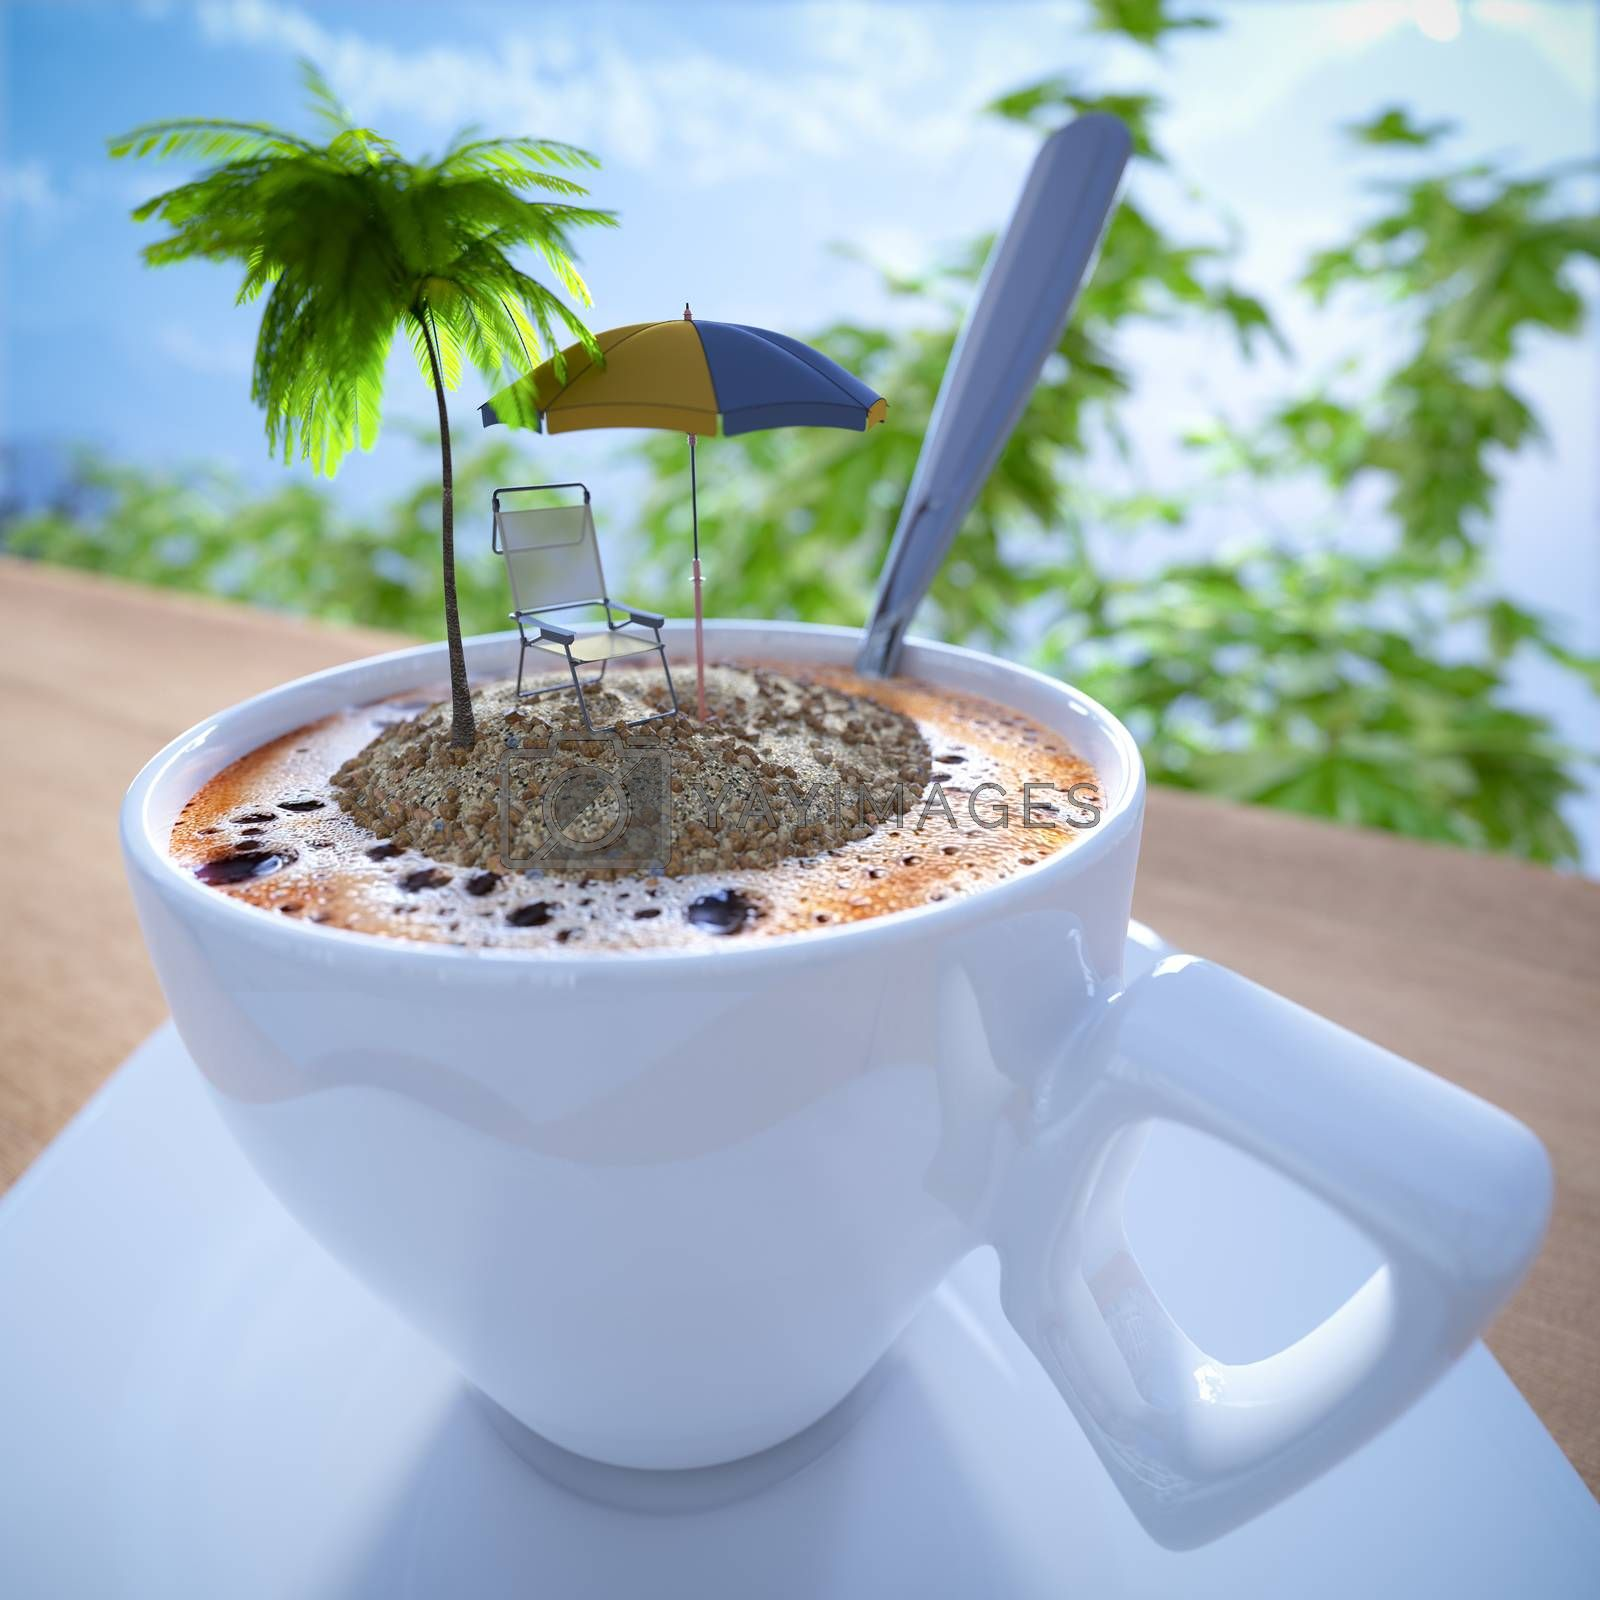 Royalty free image of Coffee cup vacation relaxing concept composition with palm and chair by denisgo